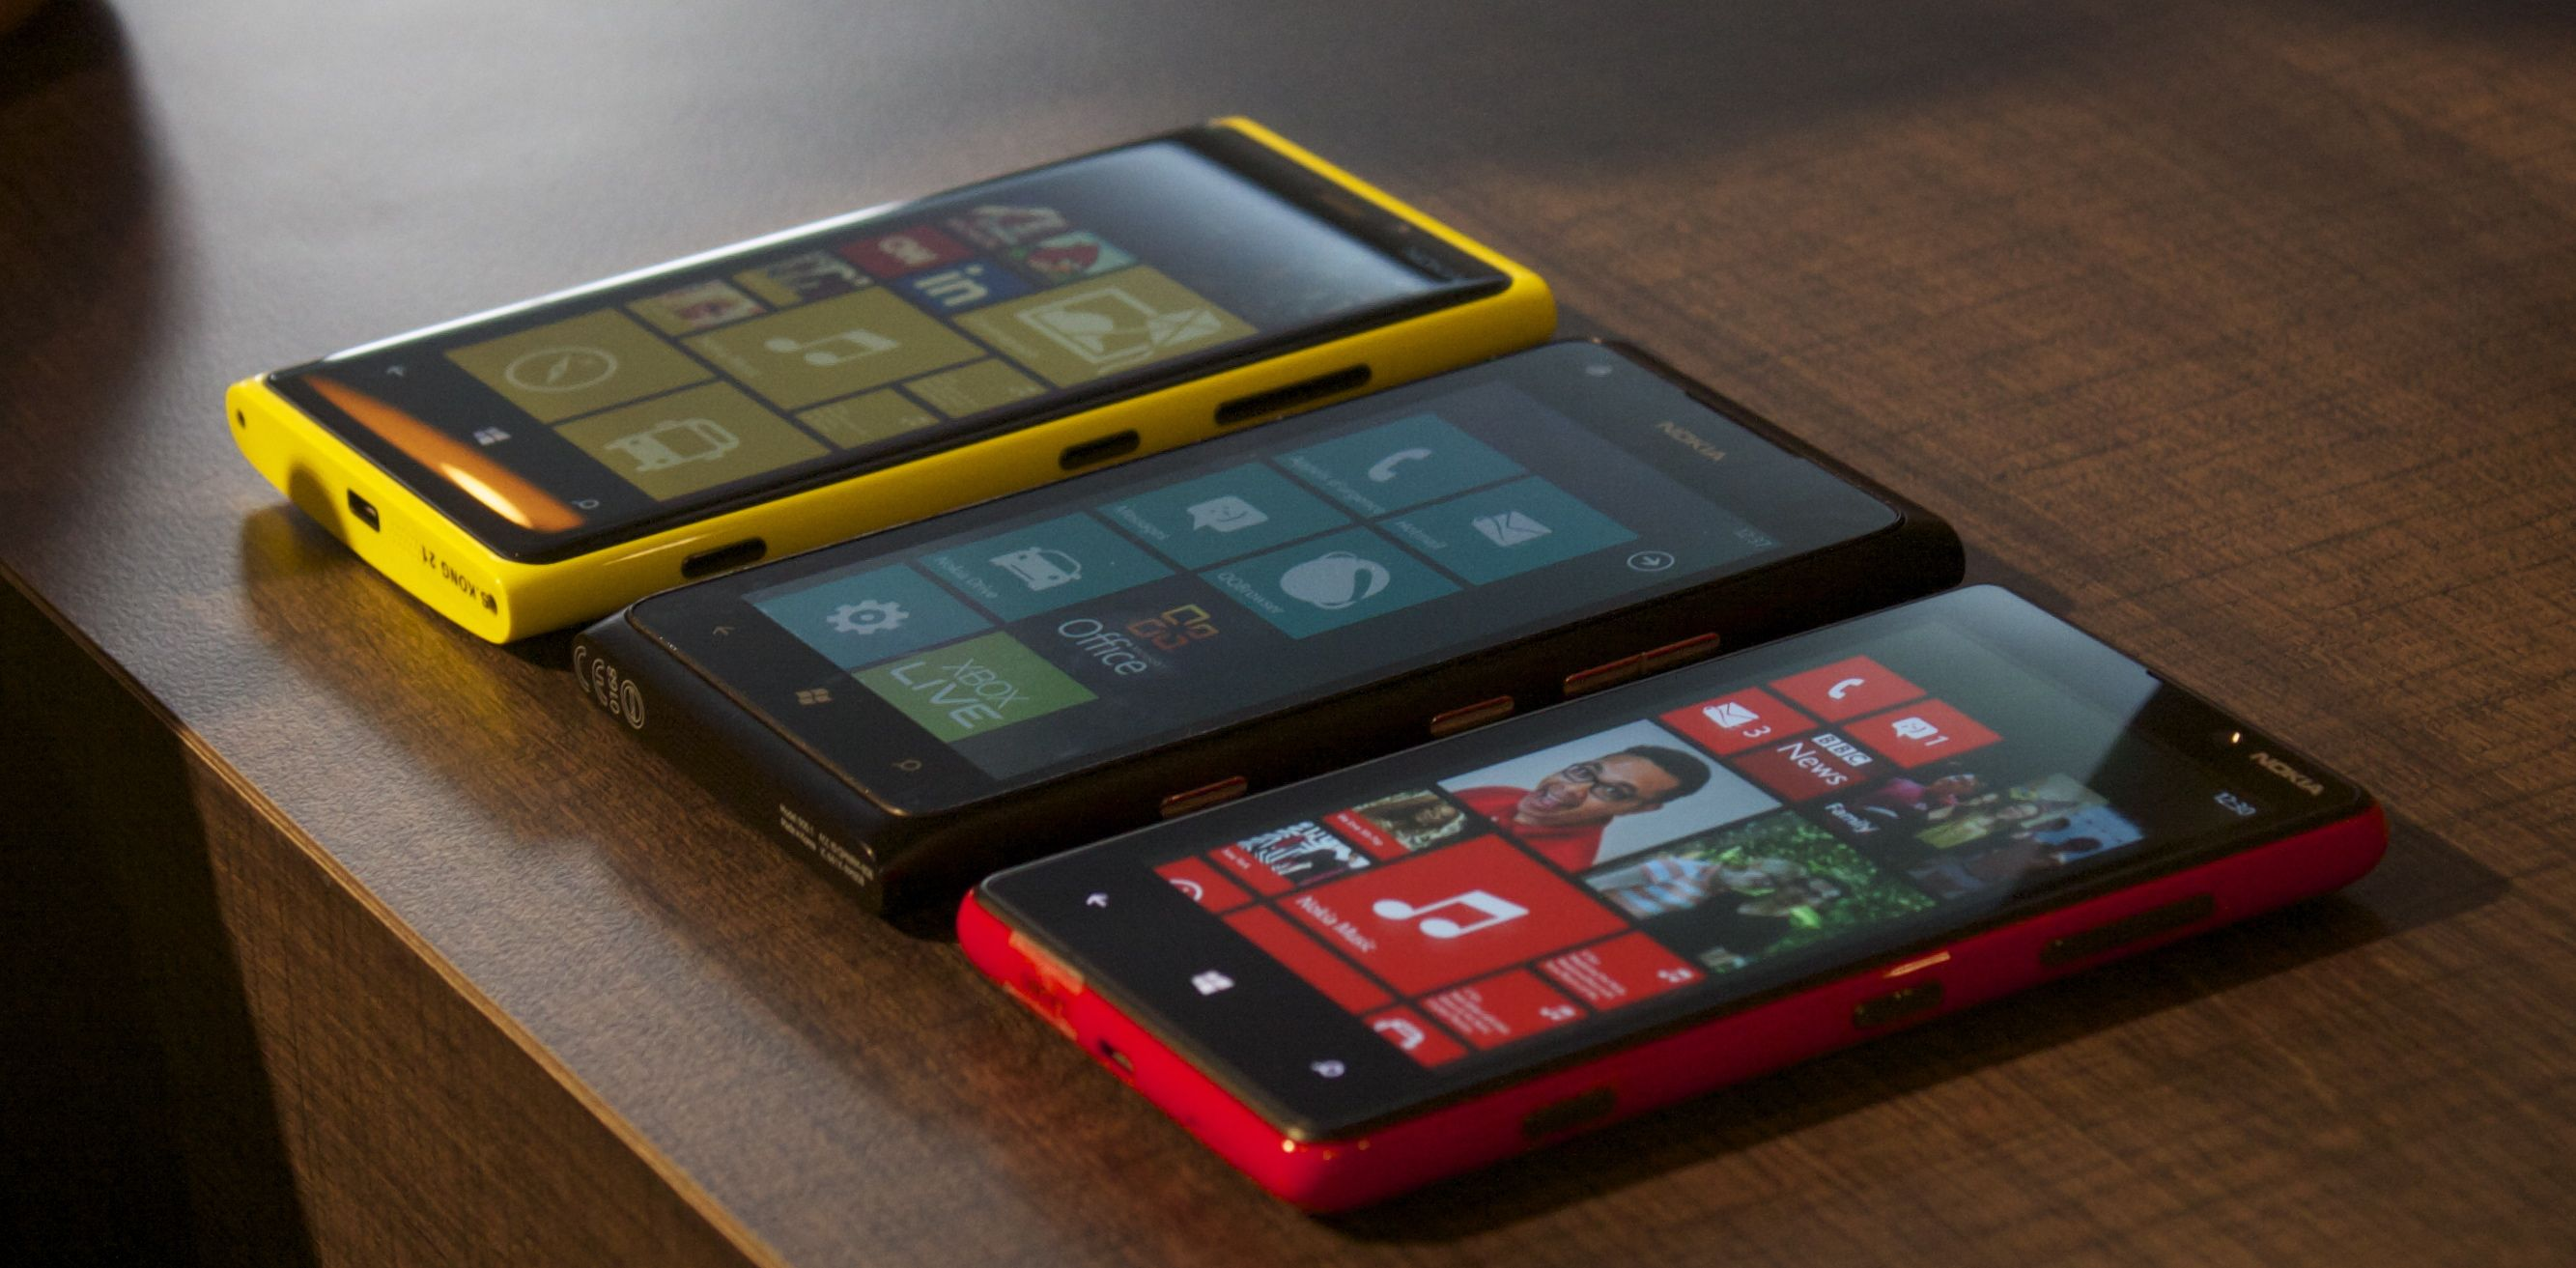 A yellow Lumia 920, black Lumia 900, and red Lumia 820